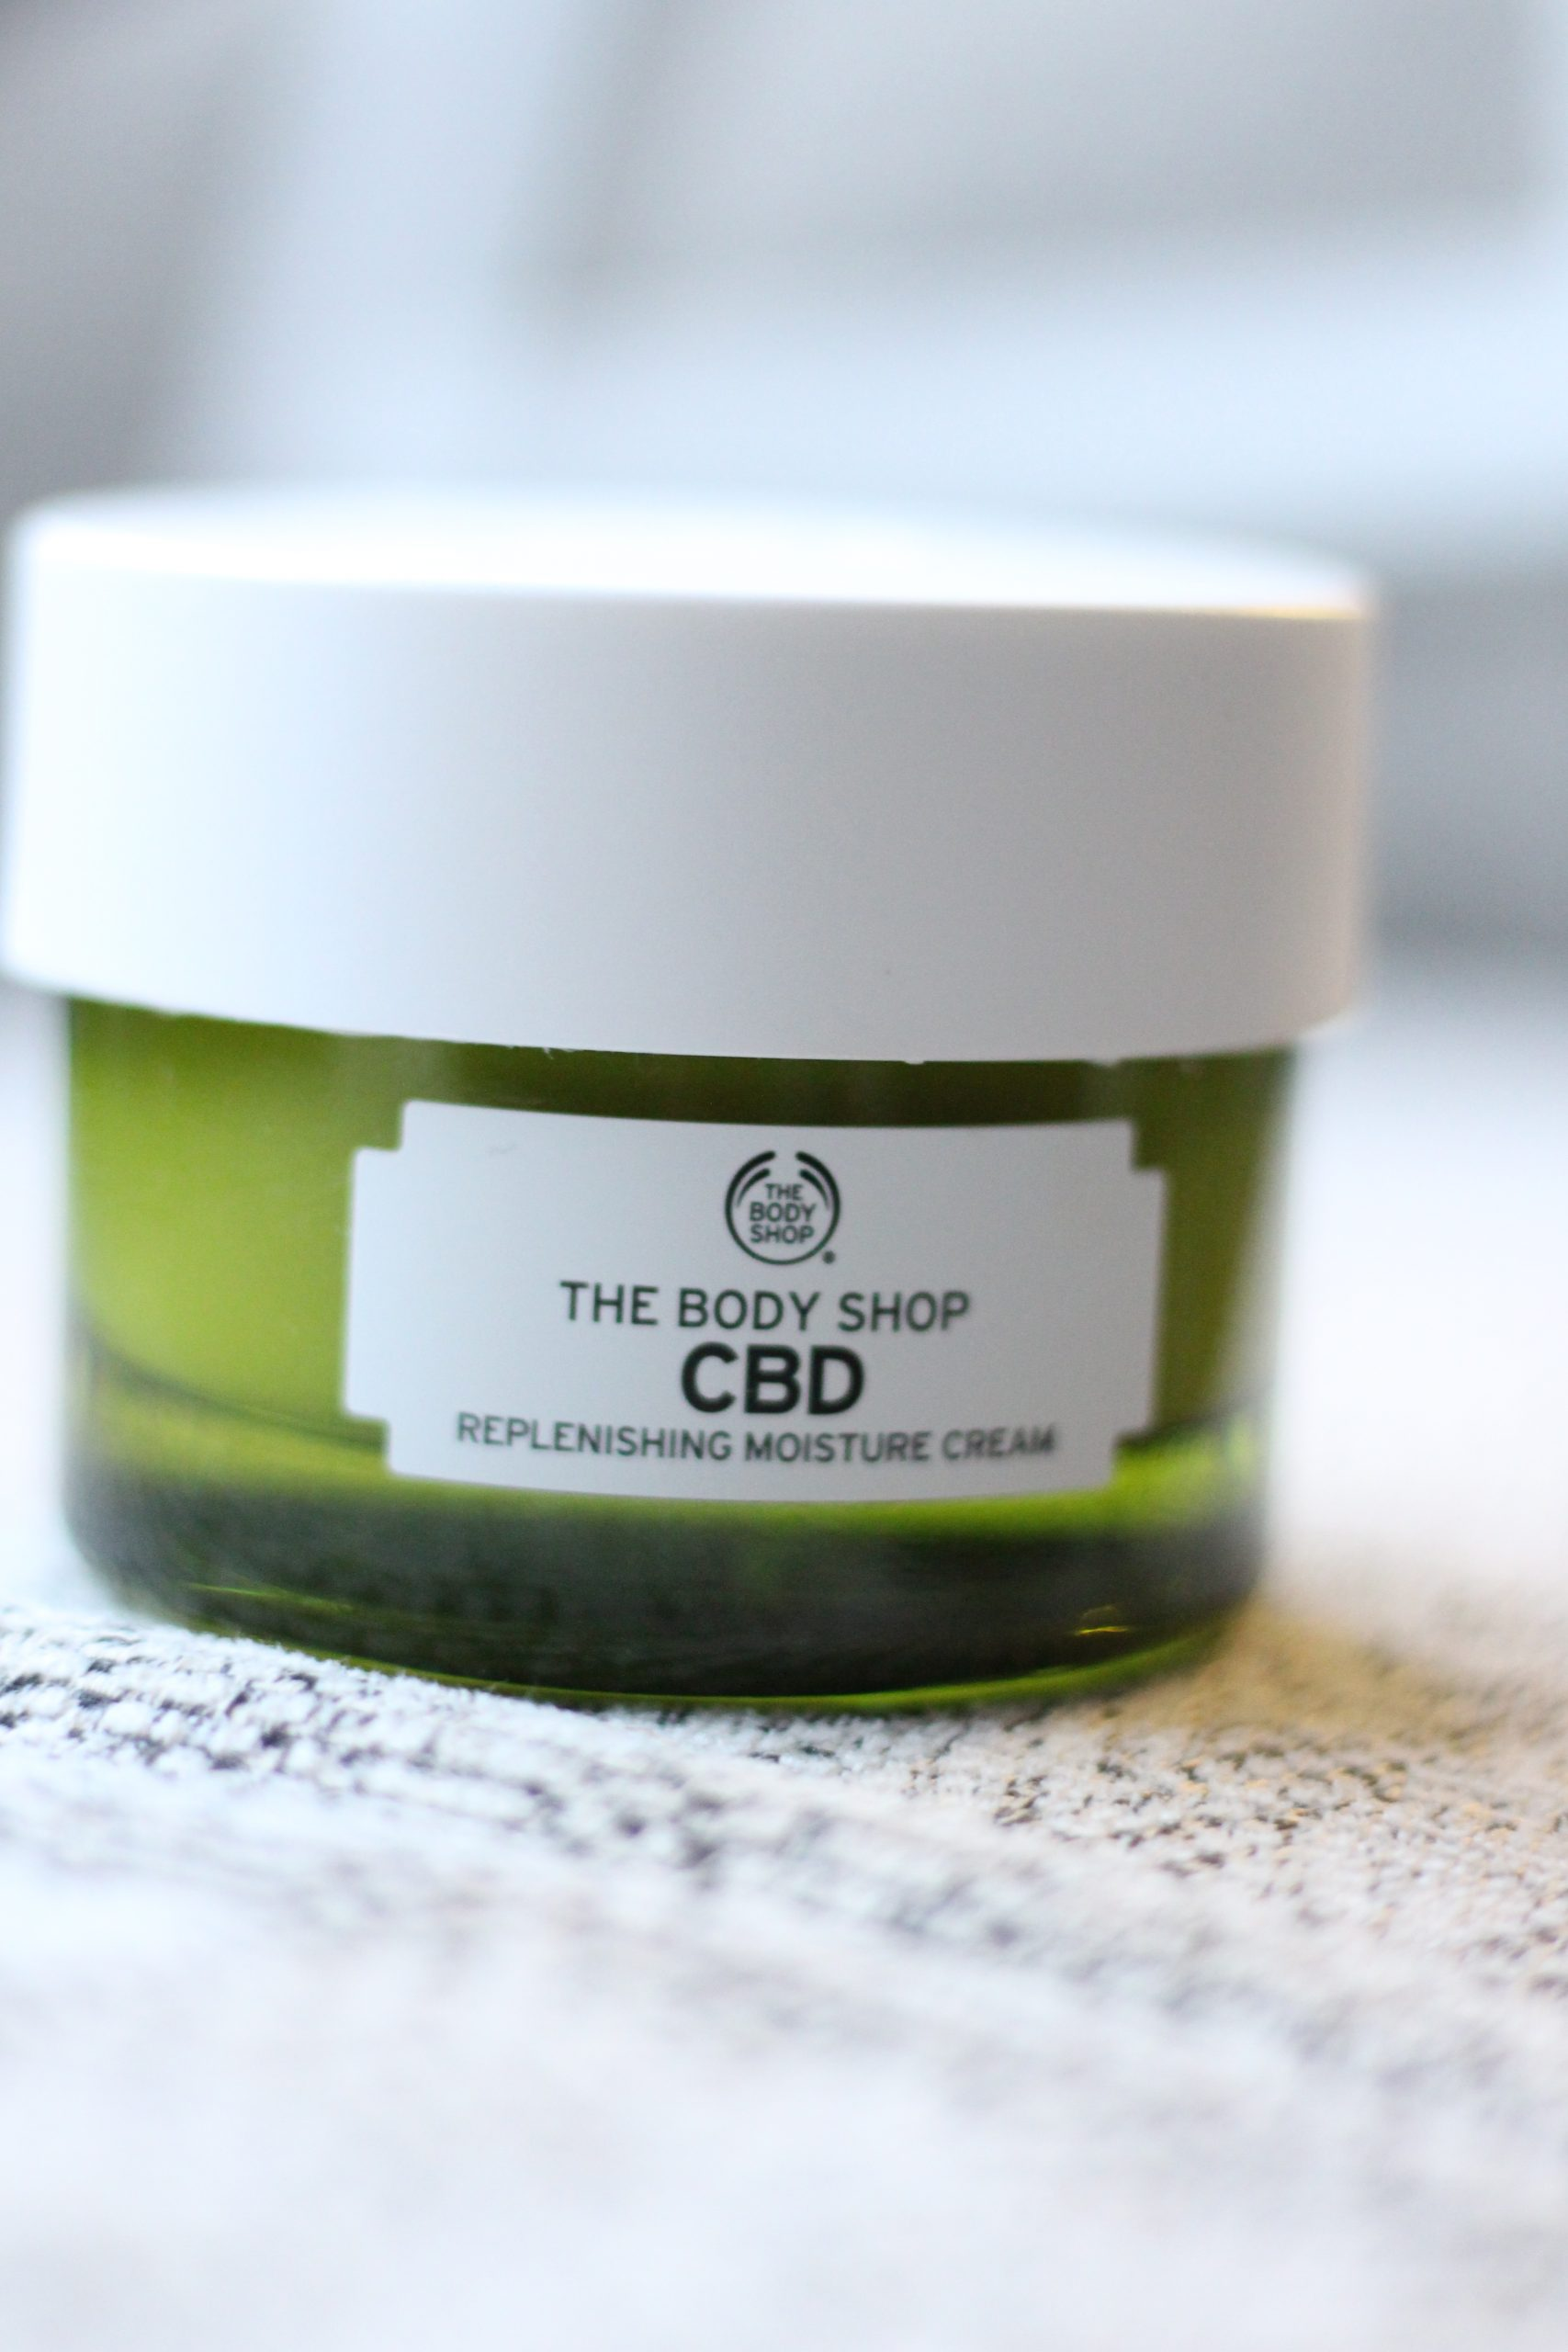 the body shop cbd moisturiser